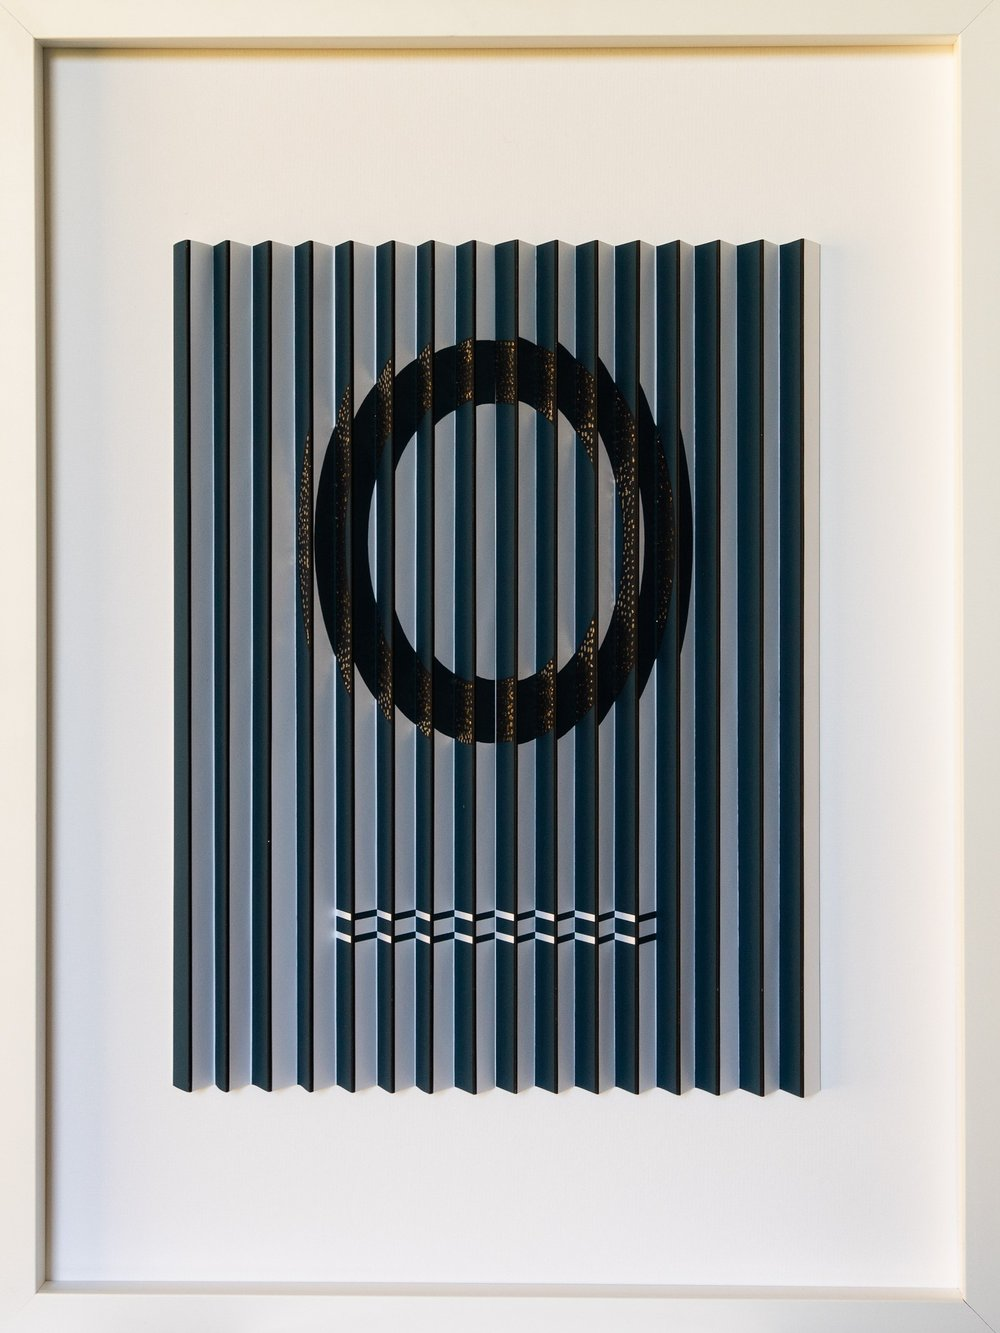 Golden Circle  Mark Cowden, limited edition multiplane work #9/10, 465mm x 608mm inc. frame  sold